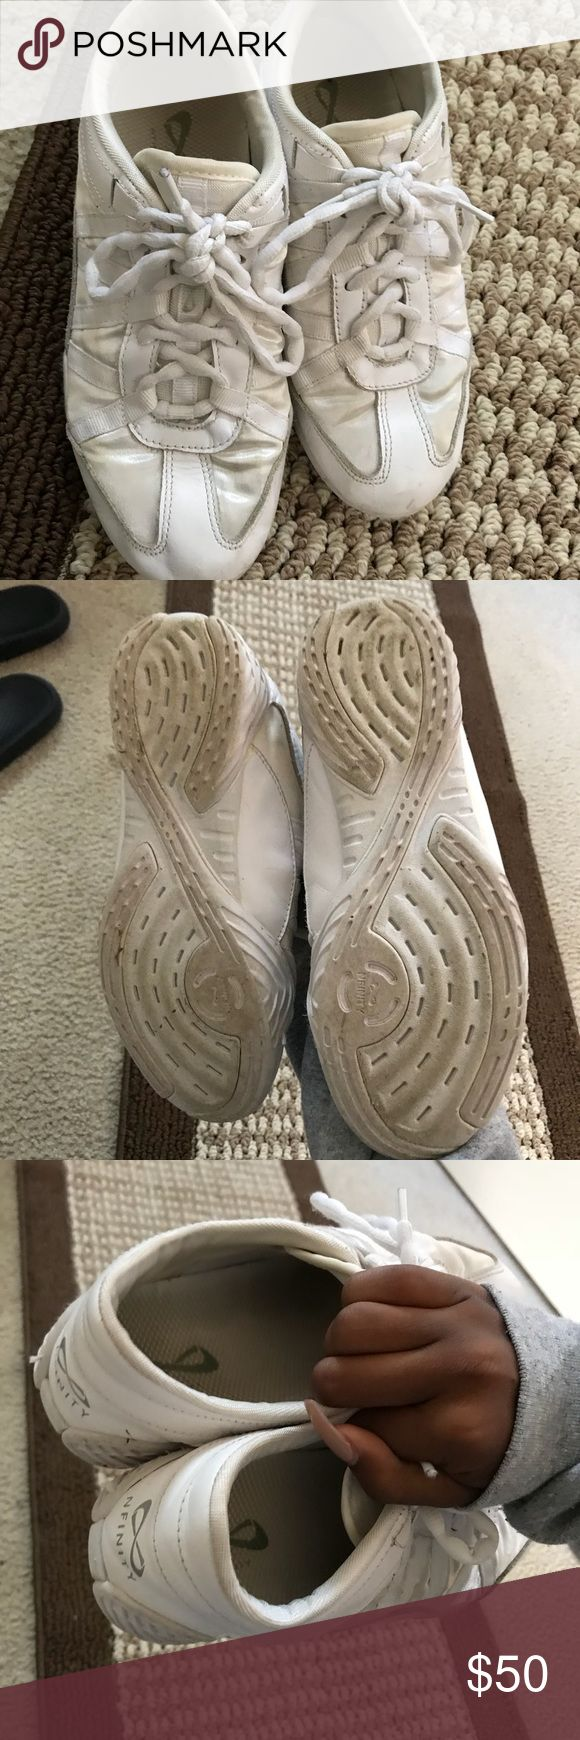 Nfinity Cheer Shoes Worn a few times, really good condition. NFINITY Shoes Sneakers